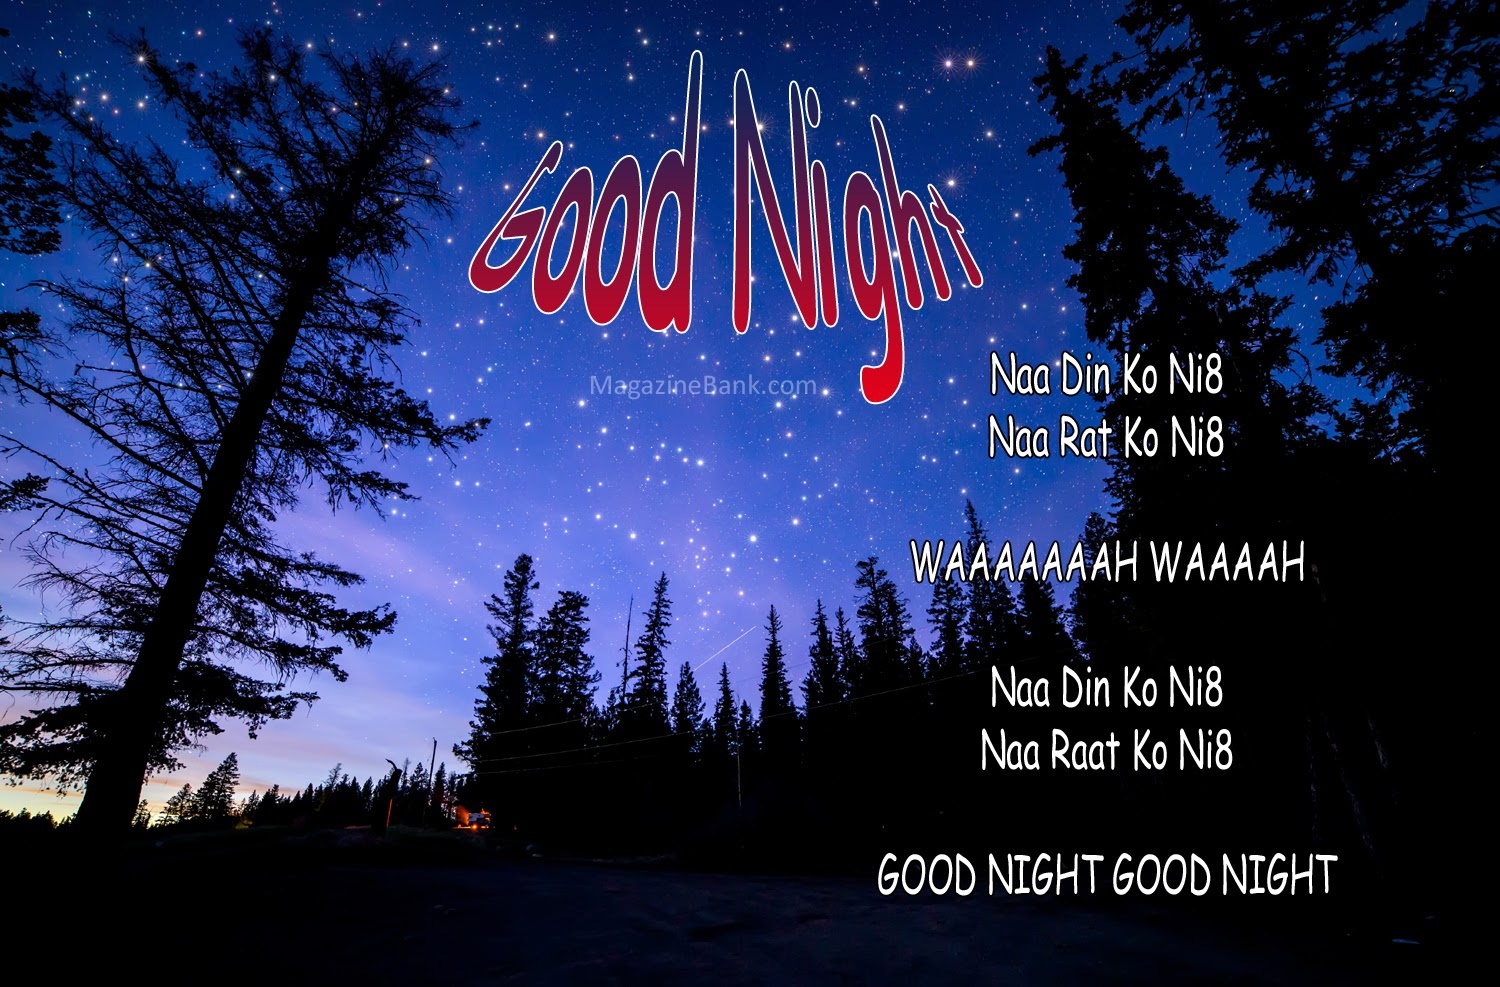 Good Night Quotes For Boyfriend Quotesgram. Professional Covering Letter For Job Application Template. Samples Of Wedding Programs Template. Sharepoint 2013 Website Templates. Rfp Proposal Sample. Free Stamp Inventory Software. Wedding Seating Charts Template. Skills For Resume Samples Template. Make Your Own Resume